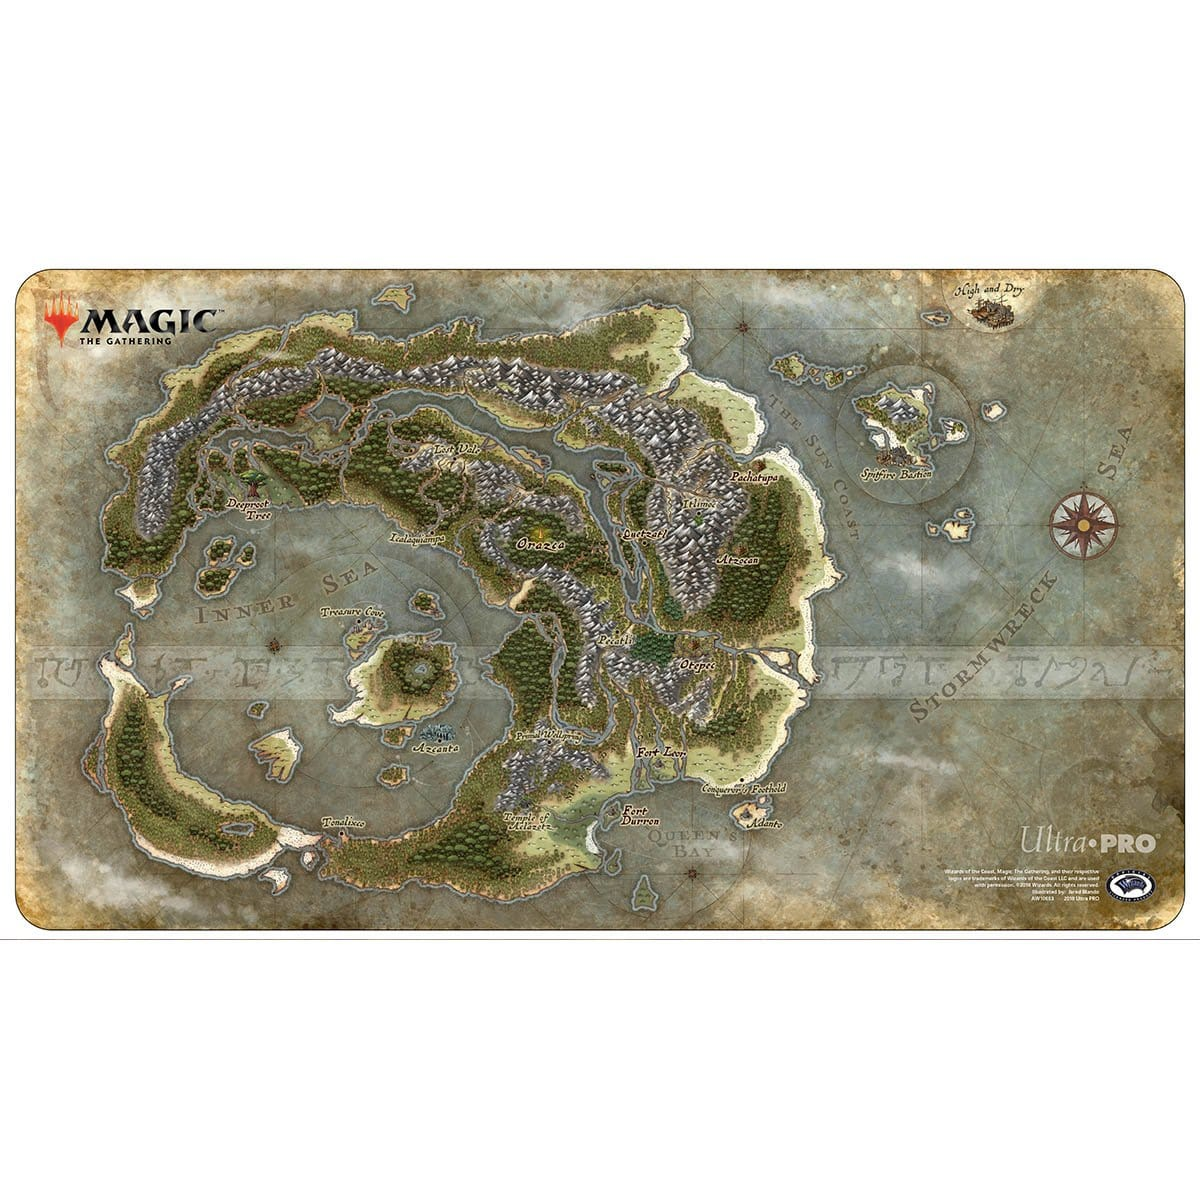 Ixalan Map Playmat - Playmat - Original Magic Art - Accessories for Magic the Gathering and other card games